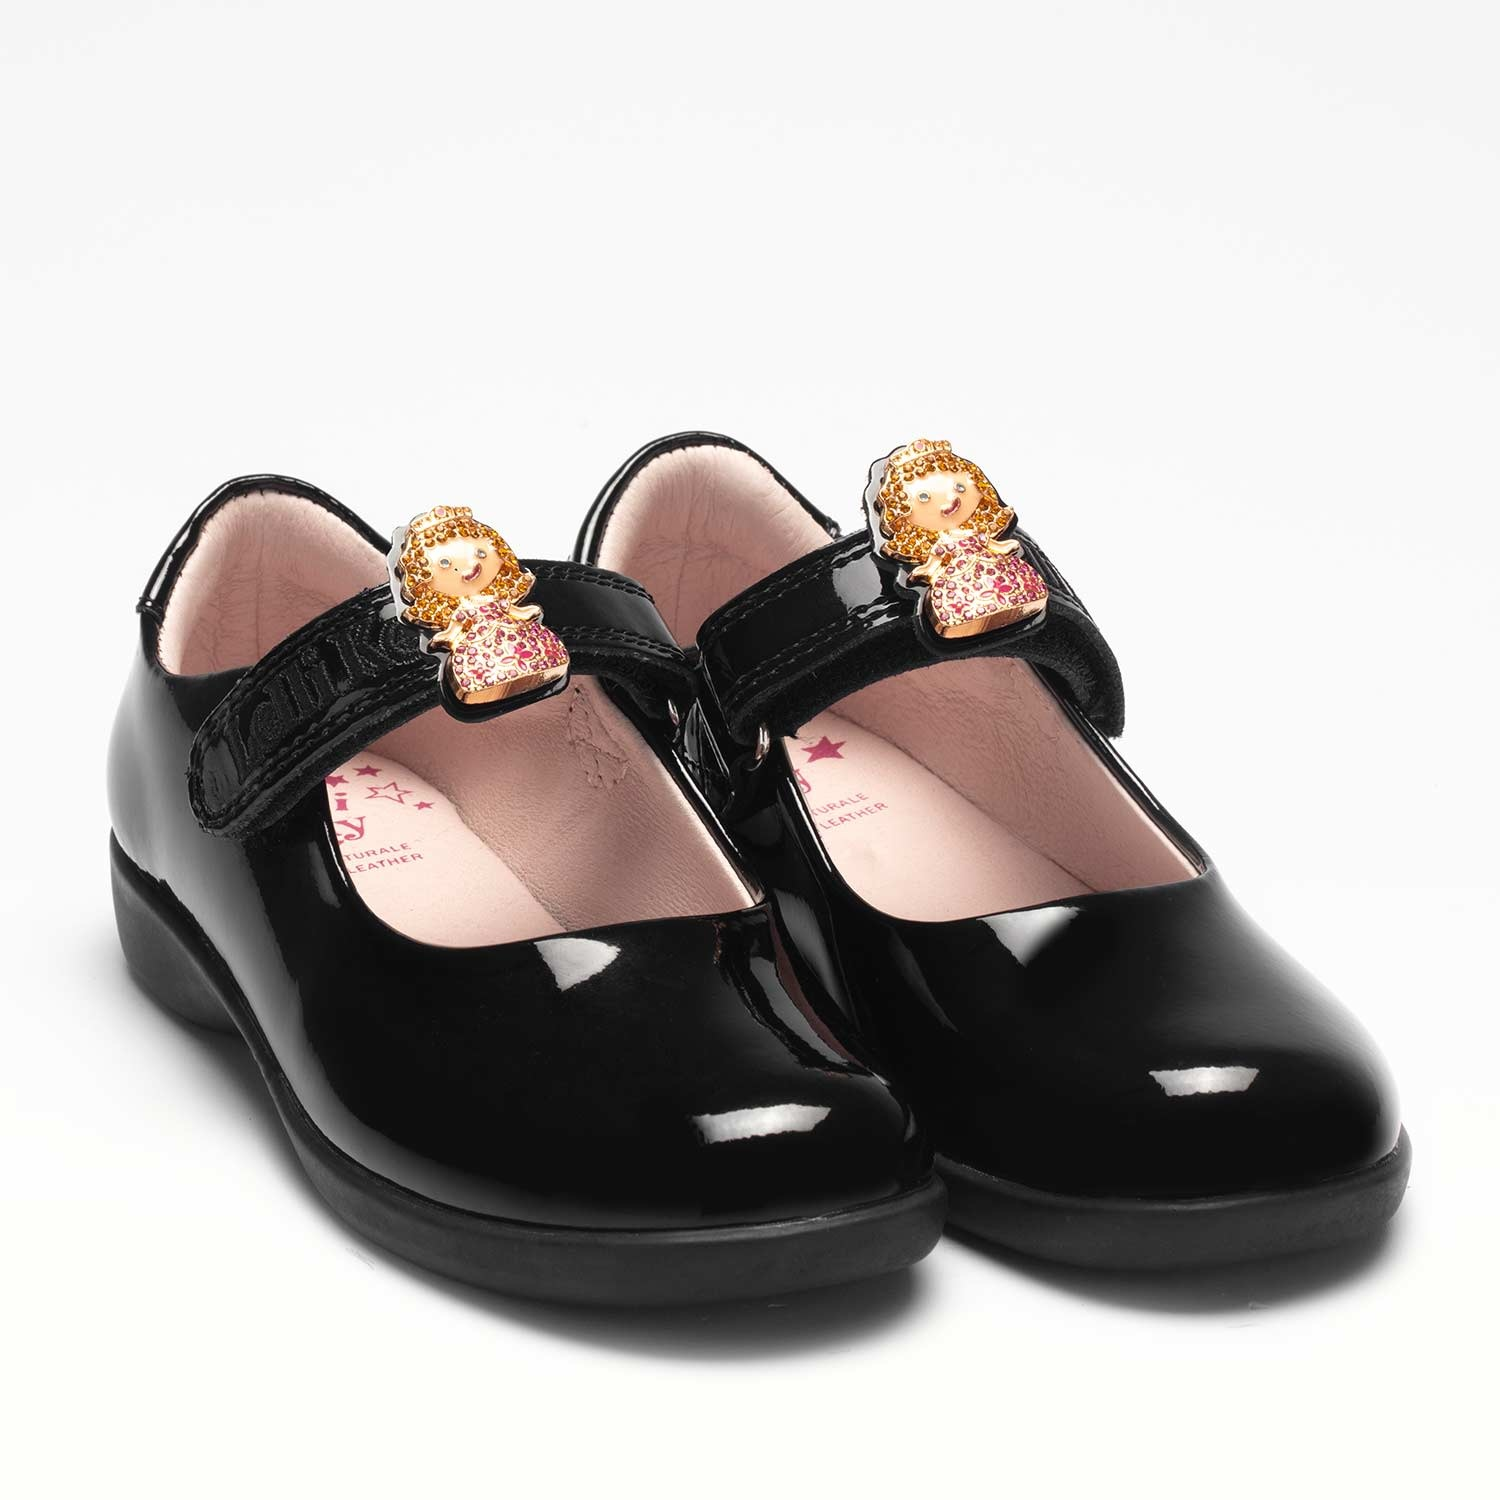 Lelli Kelly Lelli Kelly Prinny 2 Black Patent Shoes